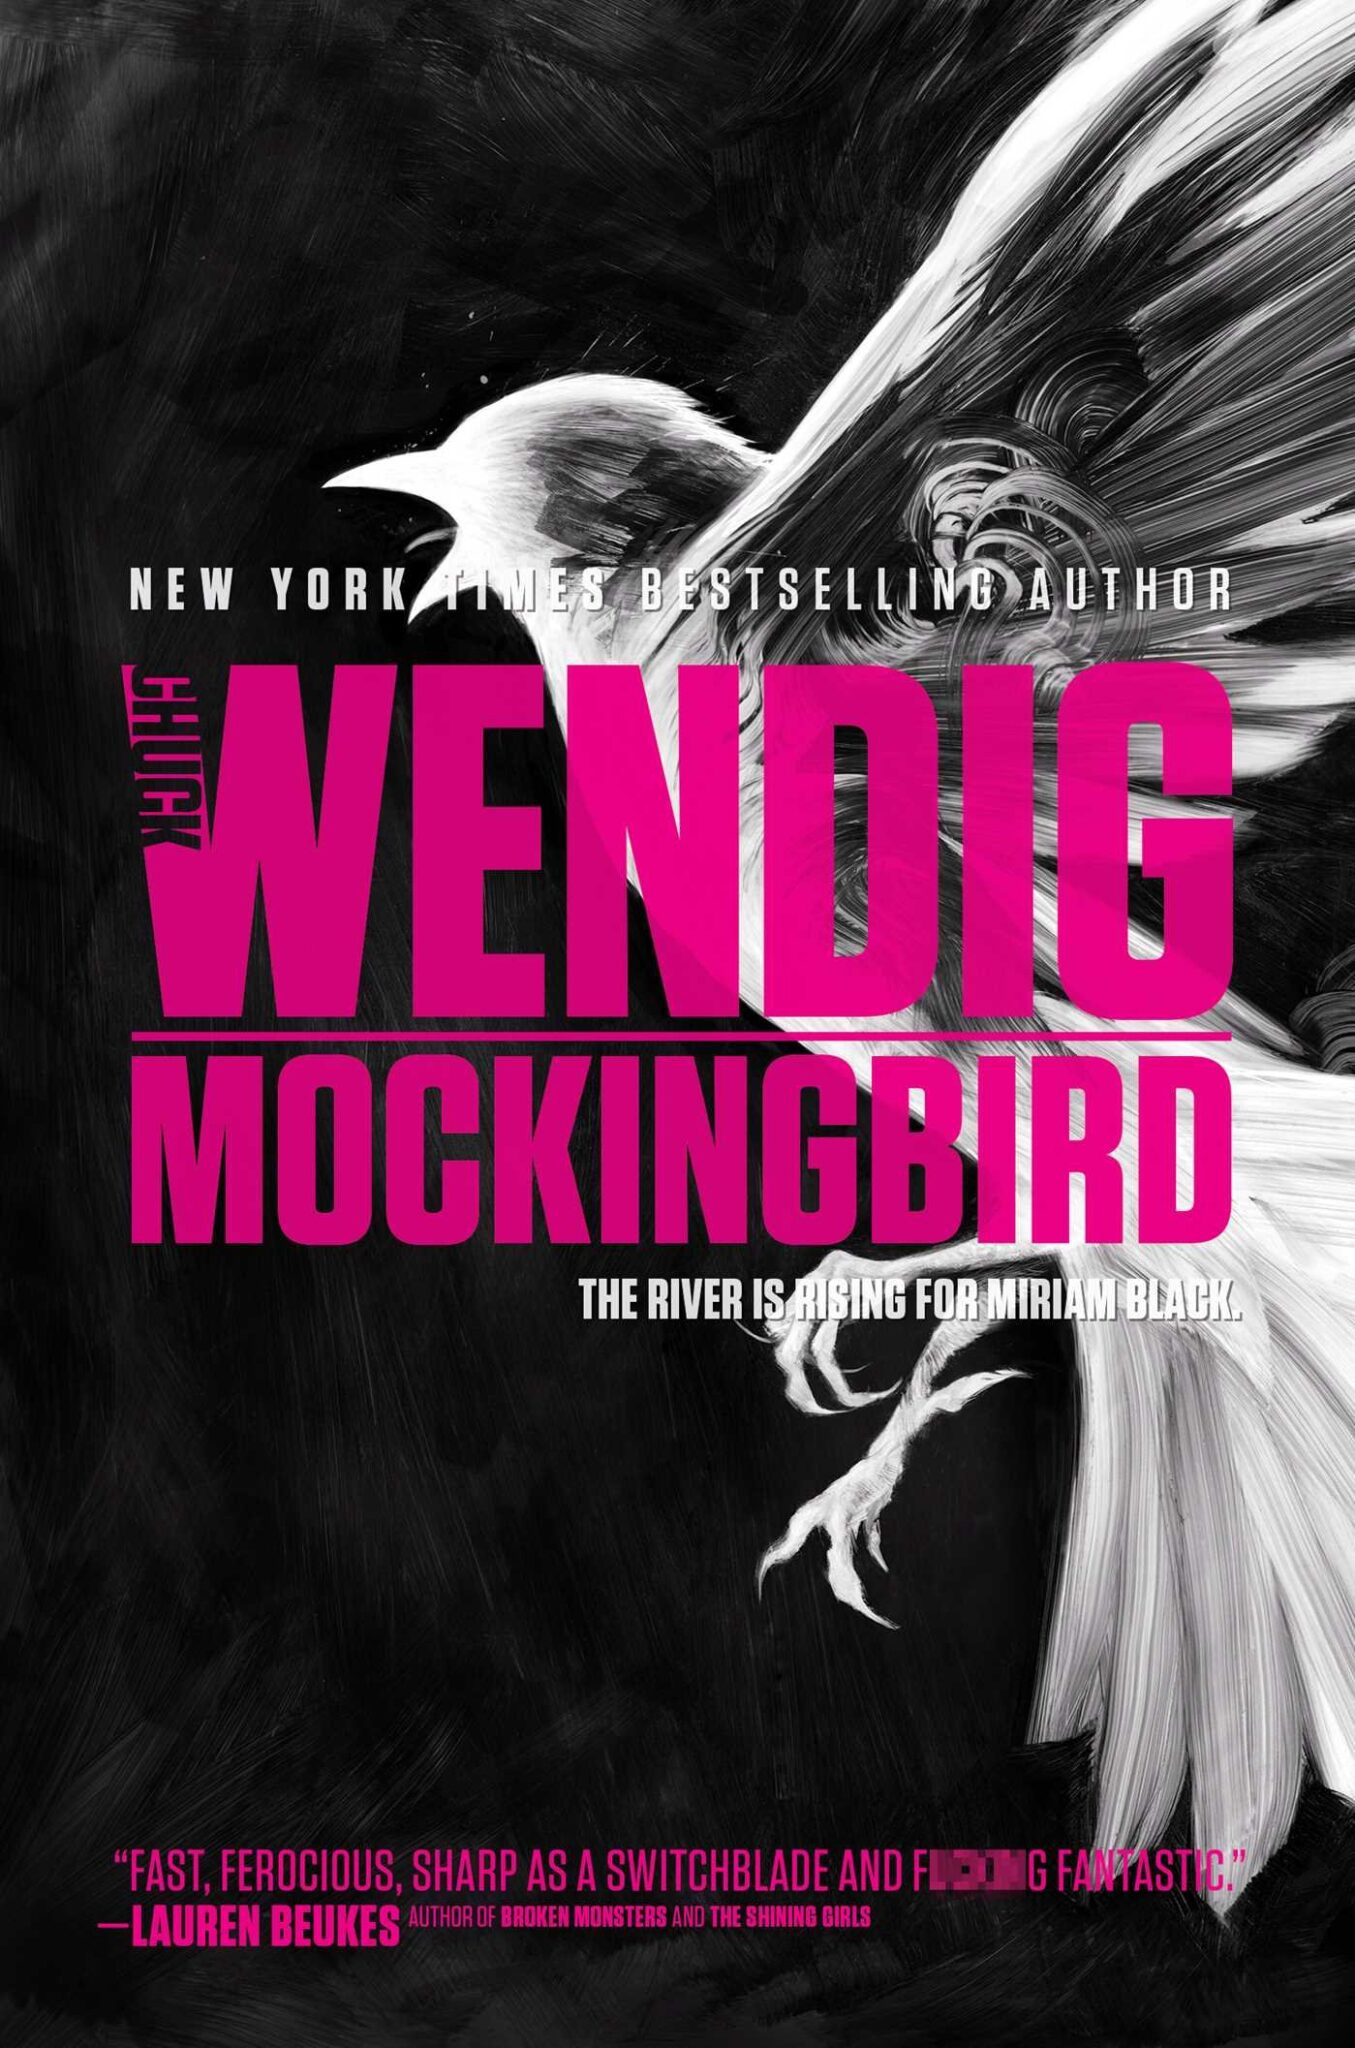 Mockingbird_nologo